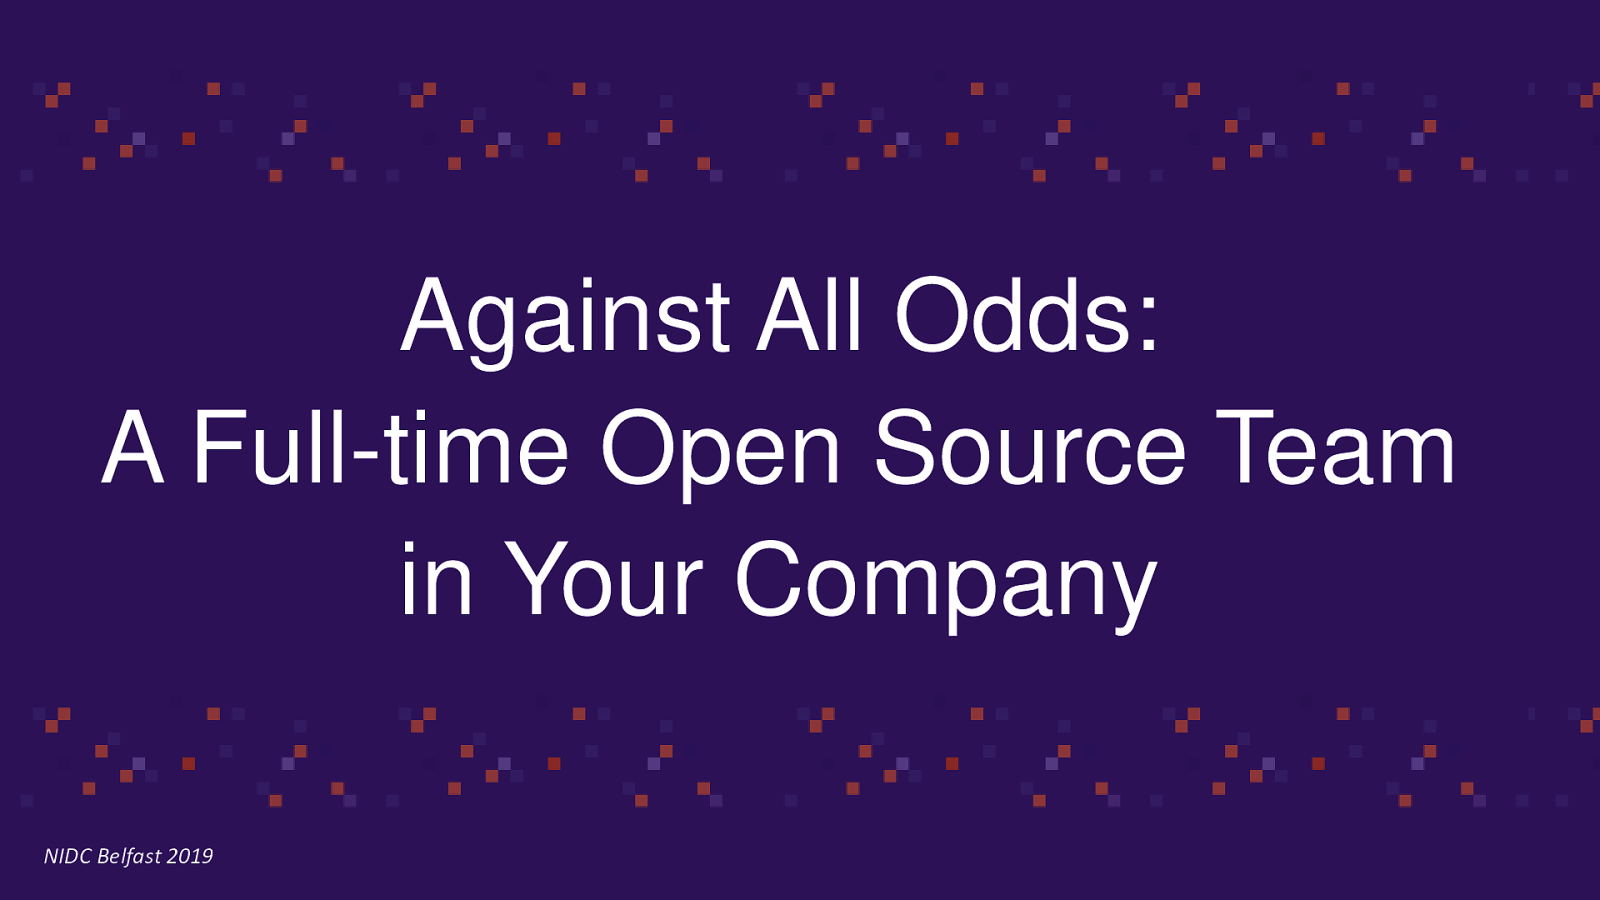 Against all odds - a team contributing full-time to Open Source projects in your company